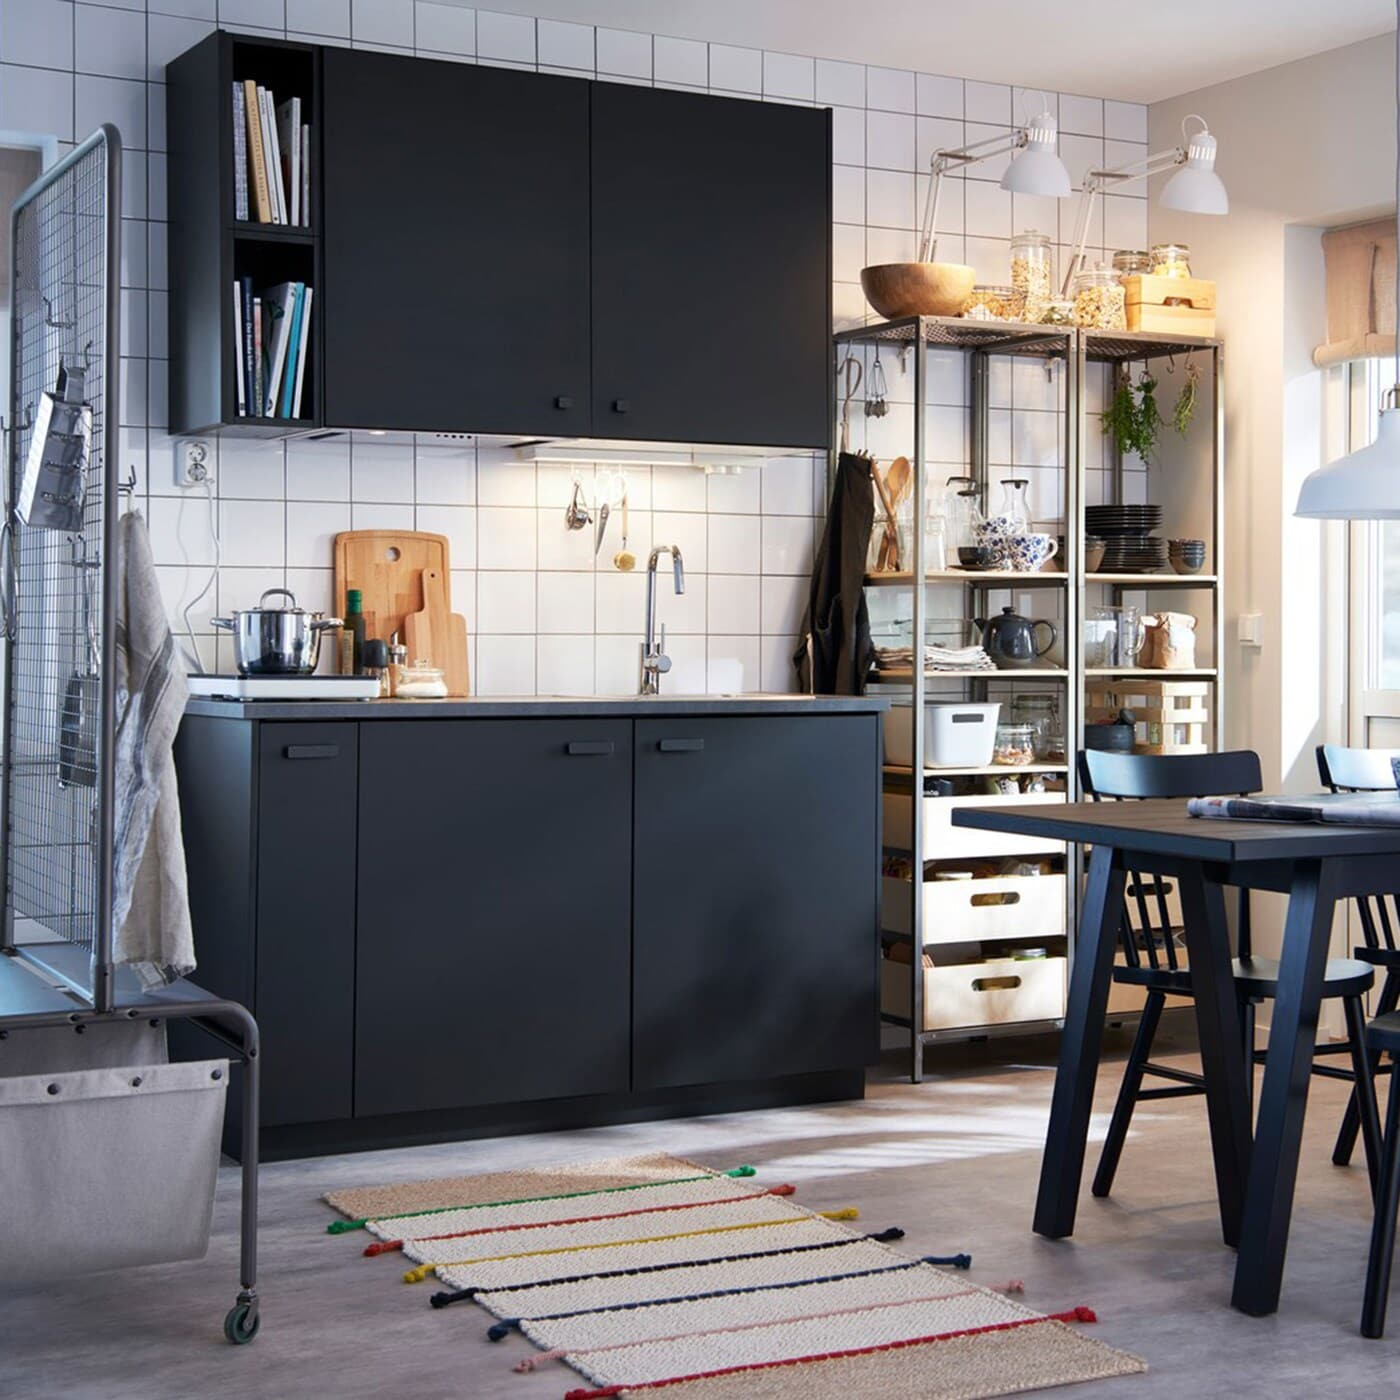 Kitchen Ideas Kitchen Inspiration Ikea